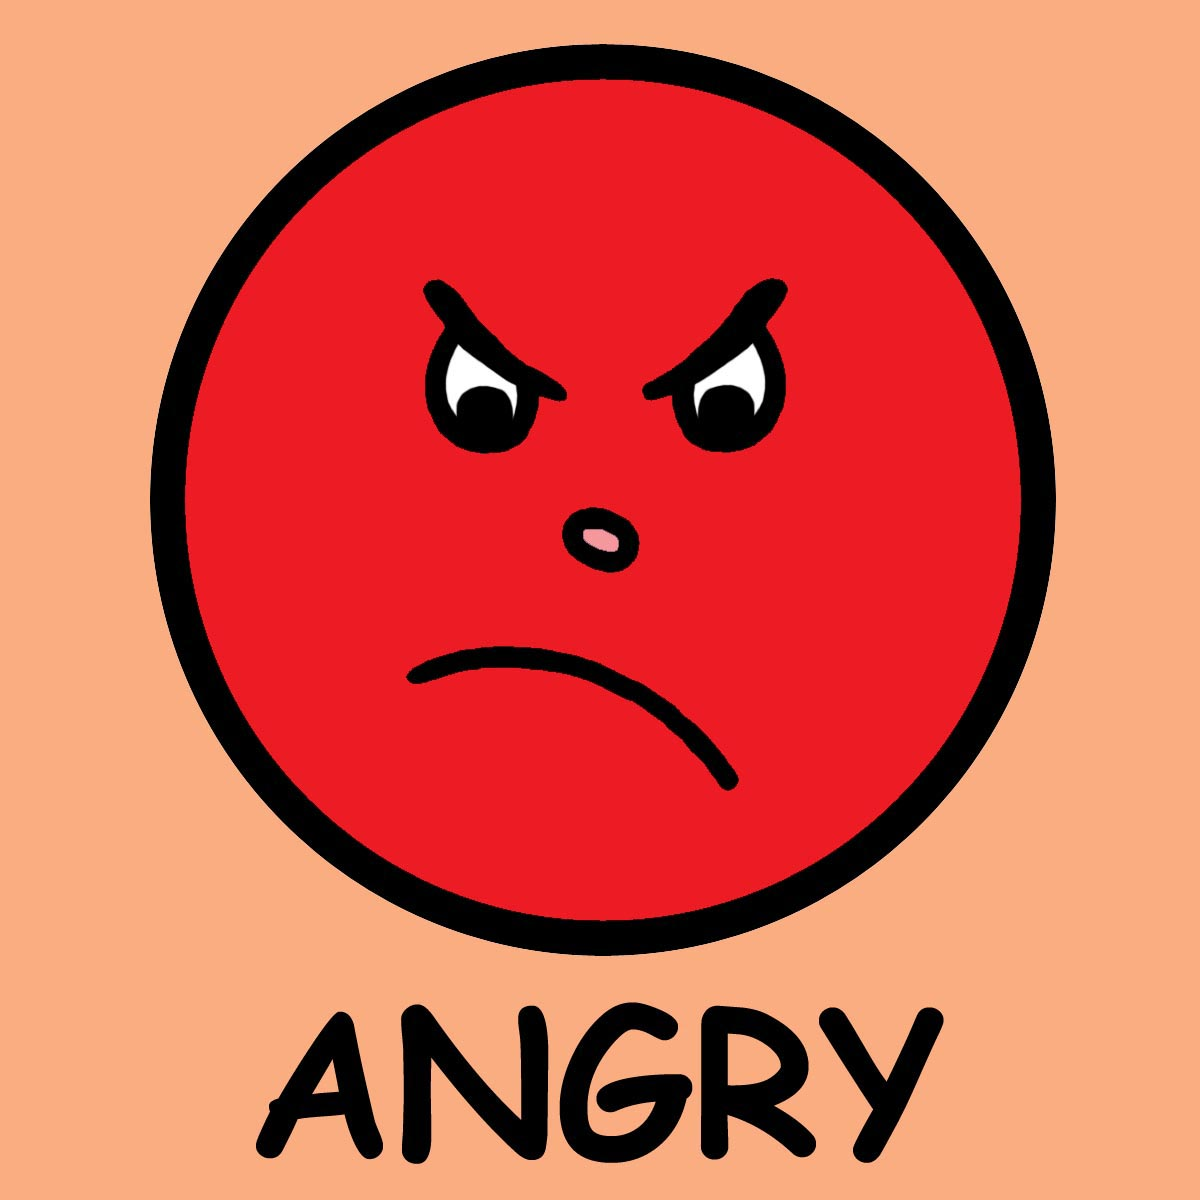 Really Angry Face Emoticon - ClipArt Best - ClipArt Best